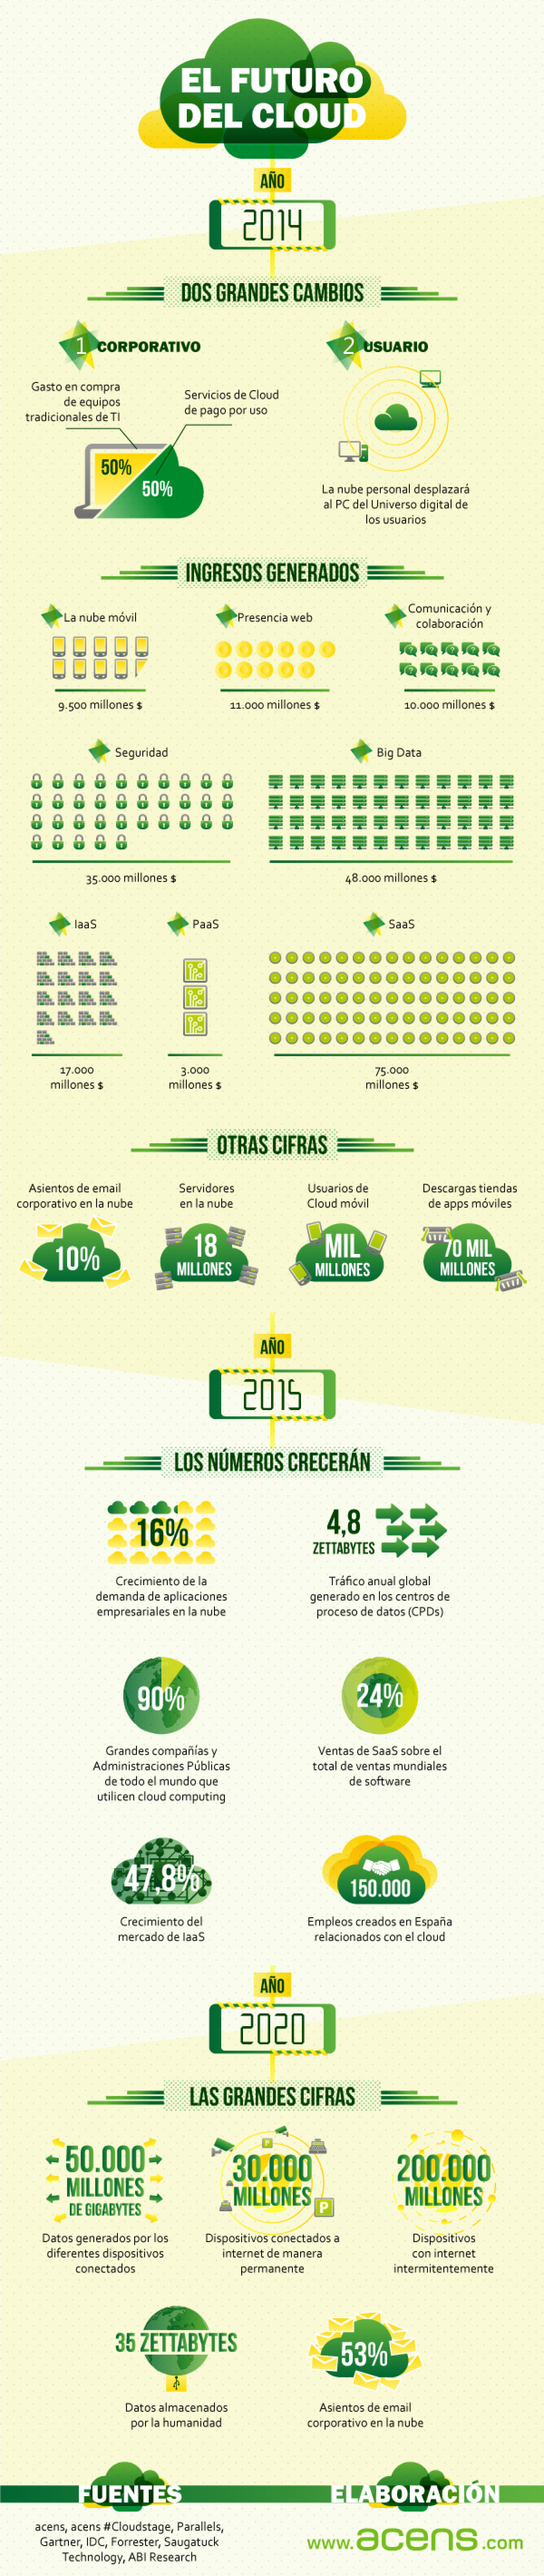 El futuro del Cloud Infographic